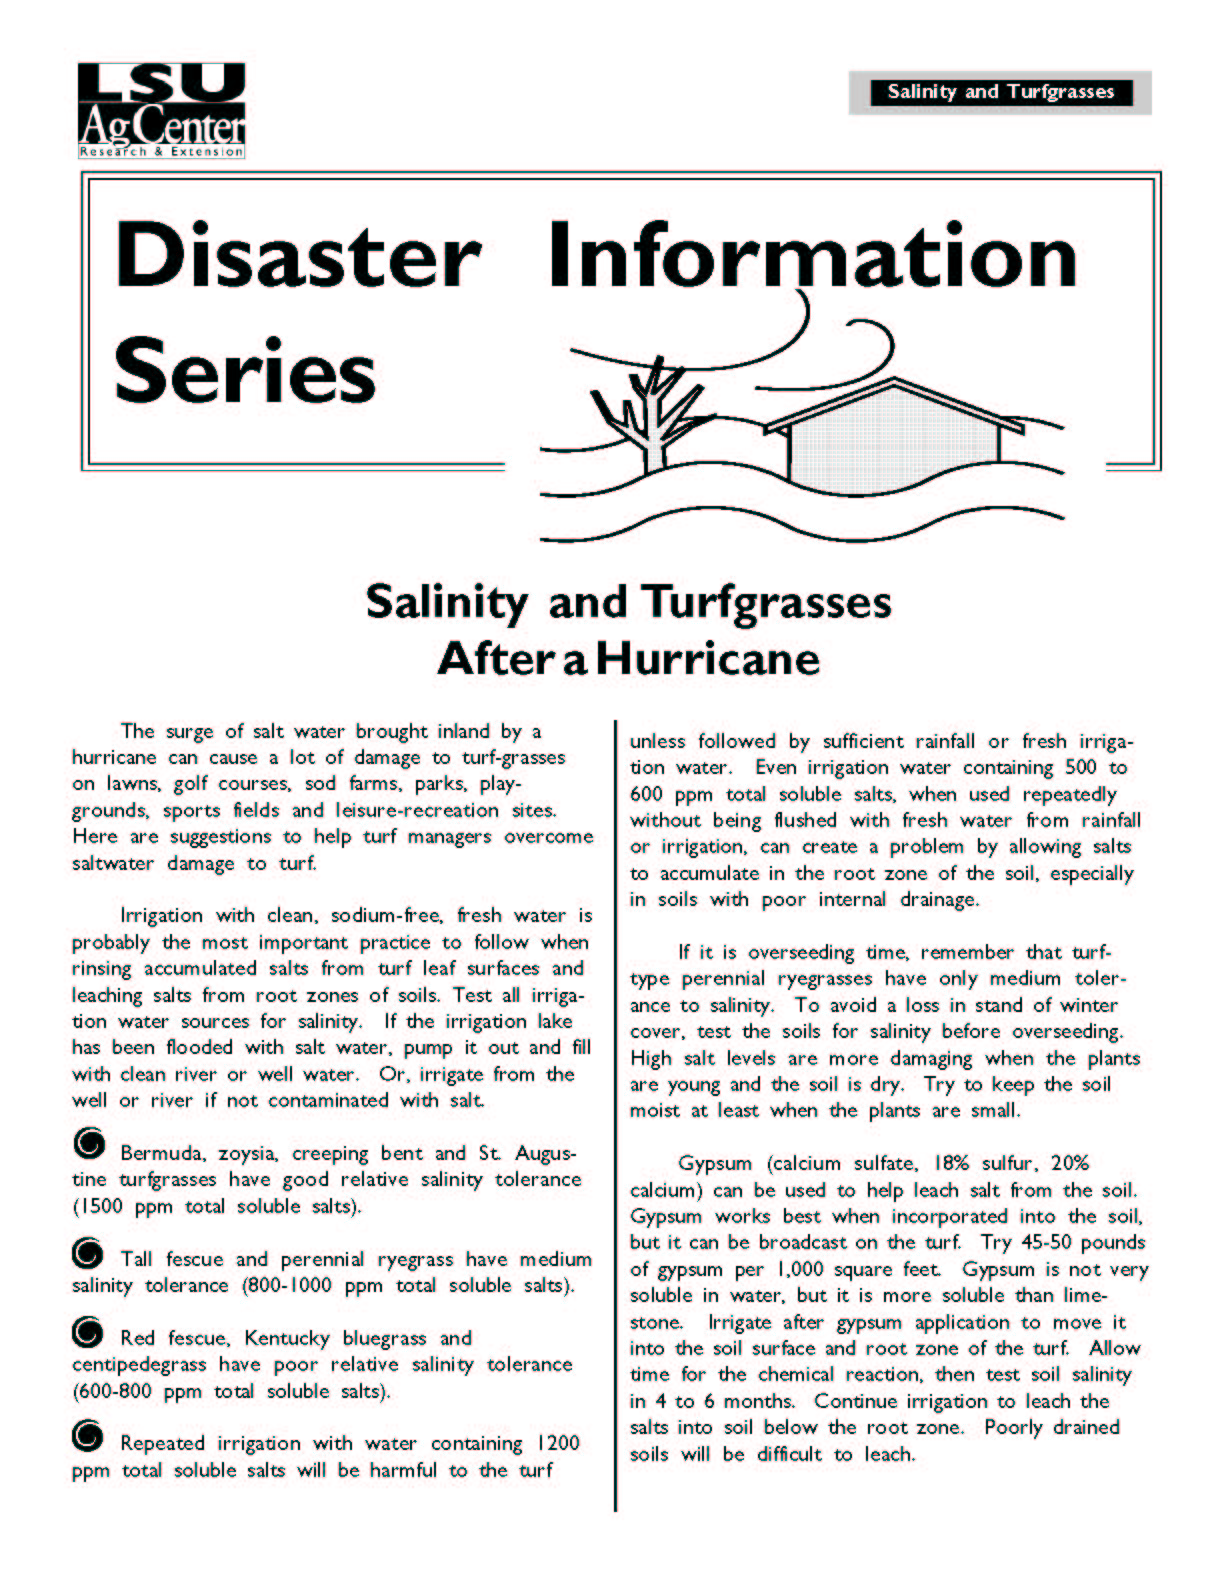 Salinity and Turfgrasses After a Hurricane